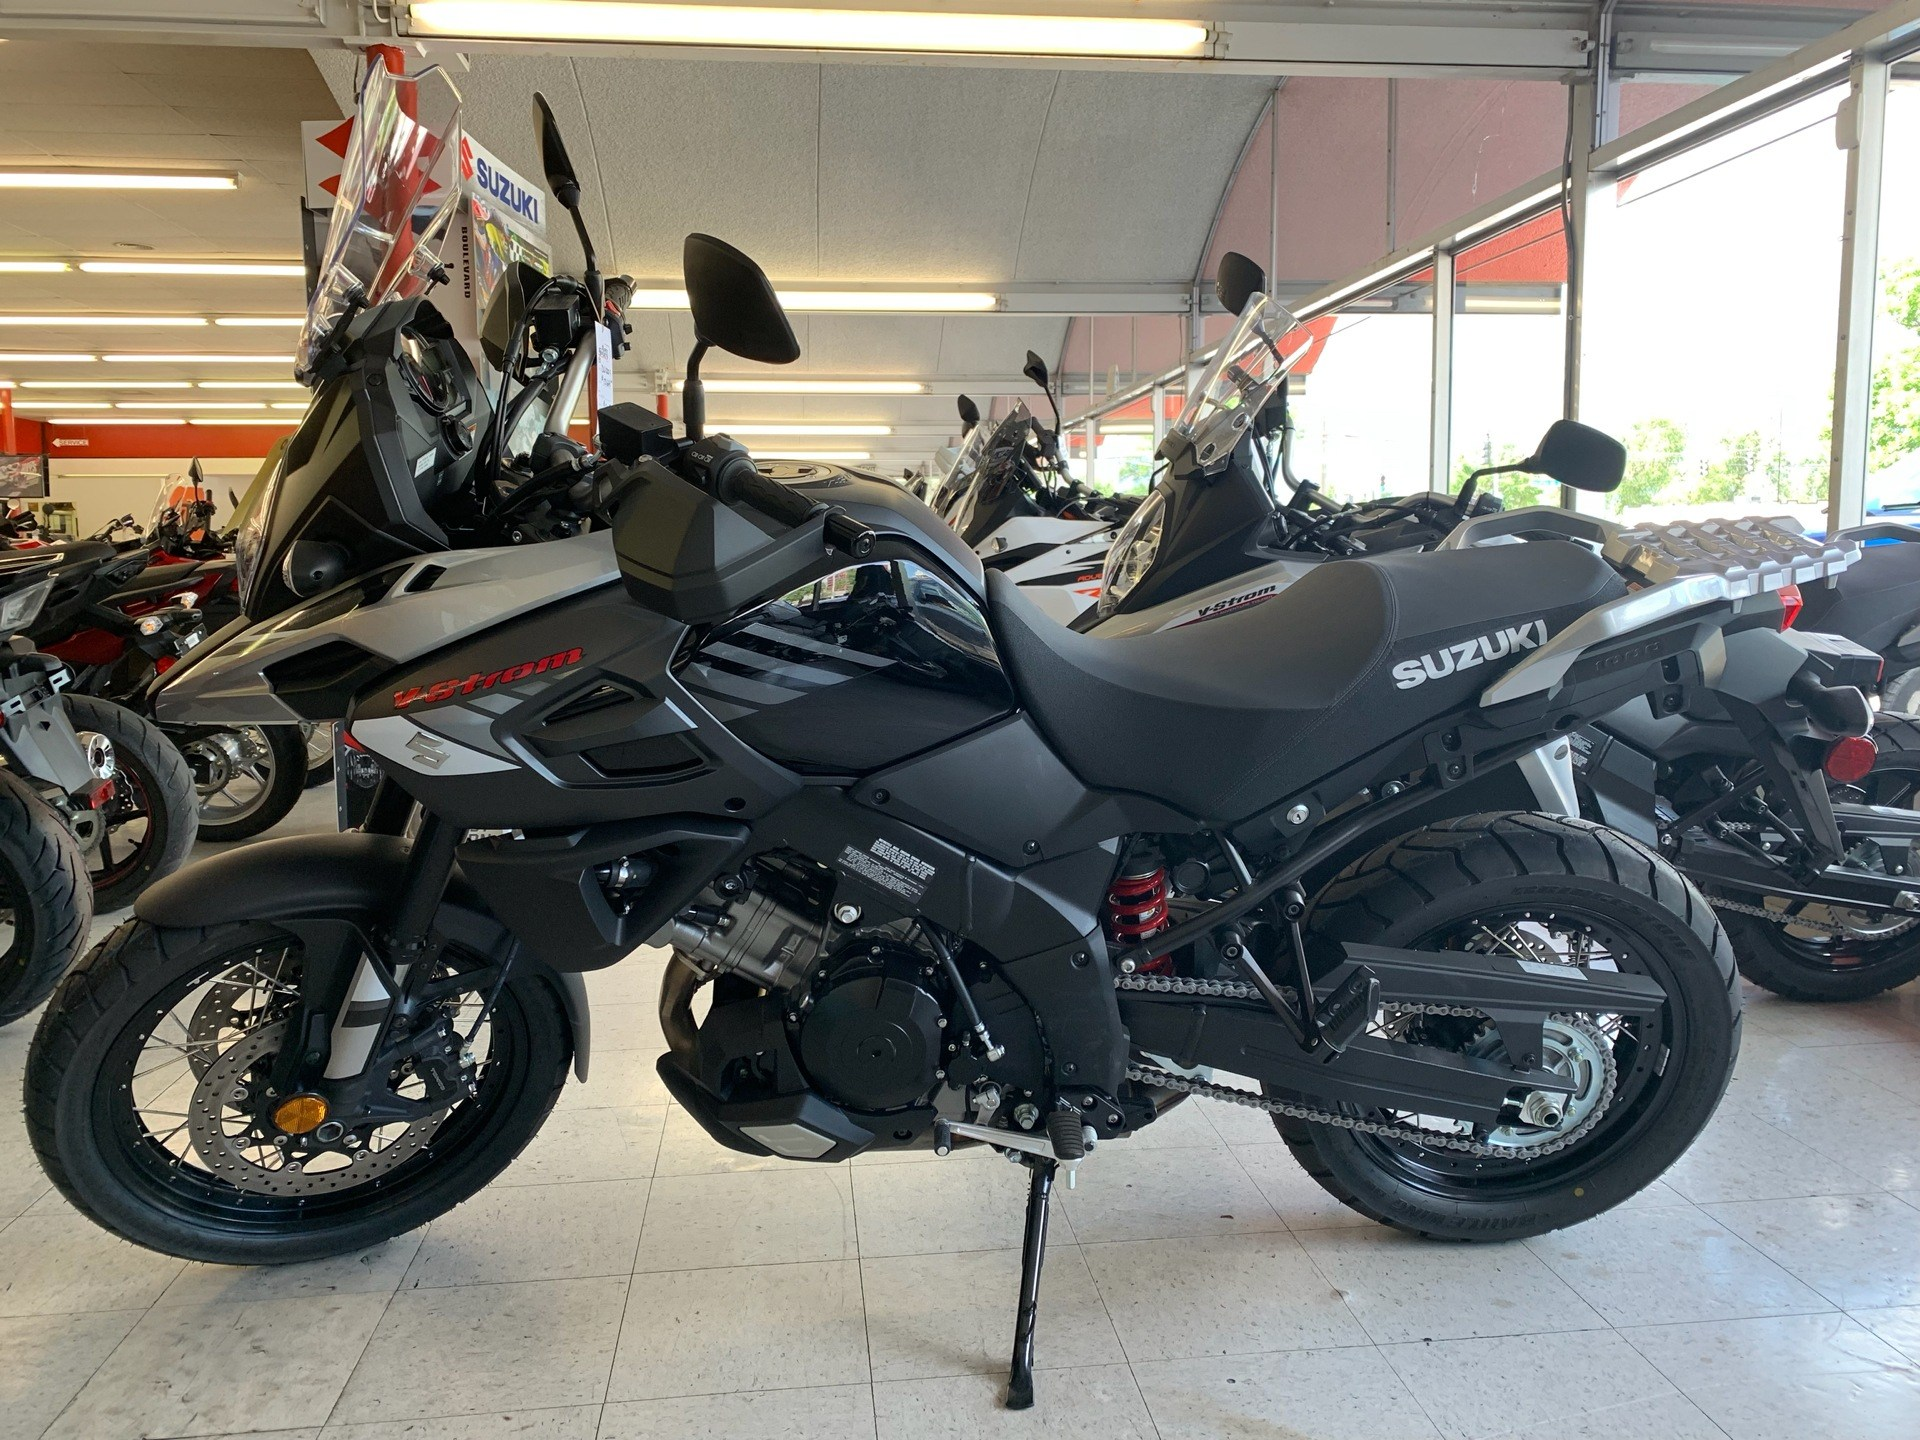 2018 Suzuki V-Strom 1000XT for sale 139057